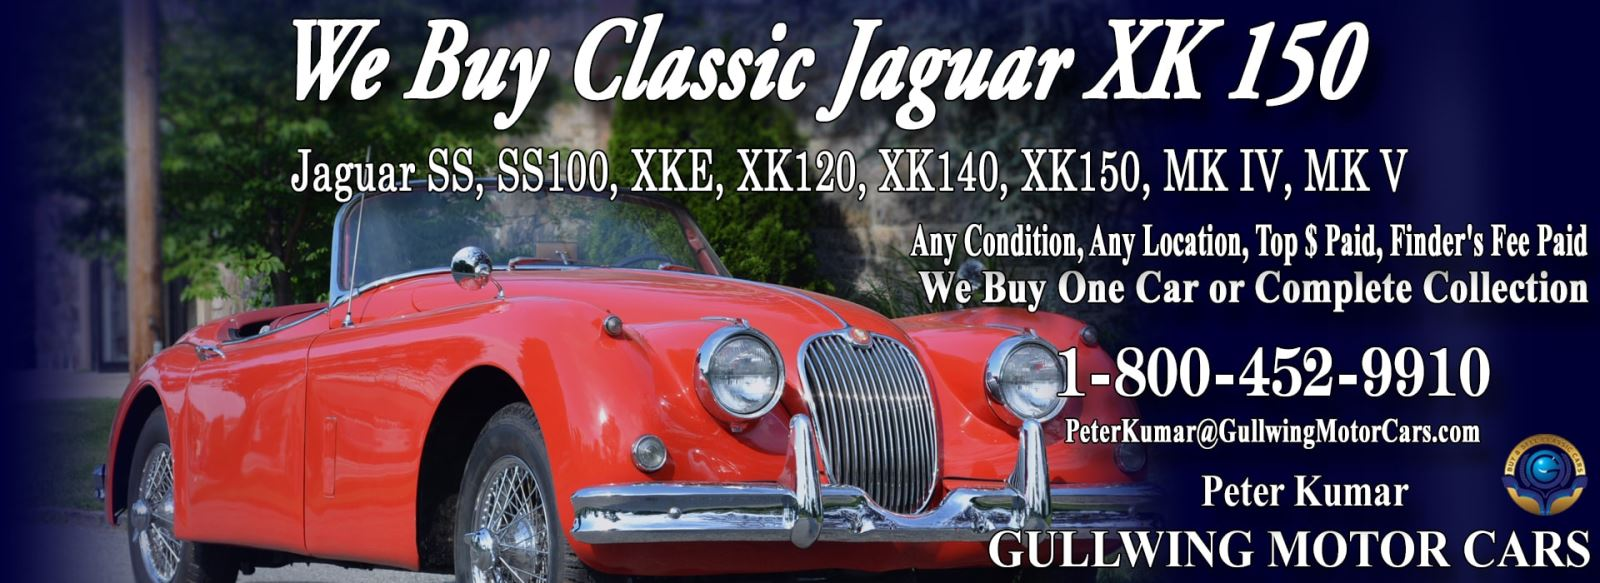 Classic Jaguar for sale, we buy vintage Jaguar XK150. Call Peter Kumar. Gullwing Motor